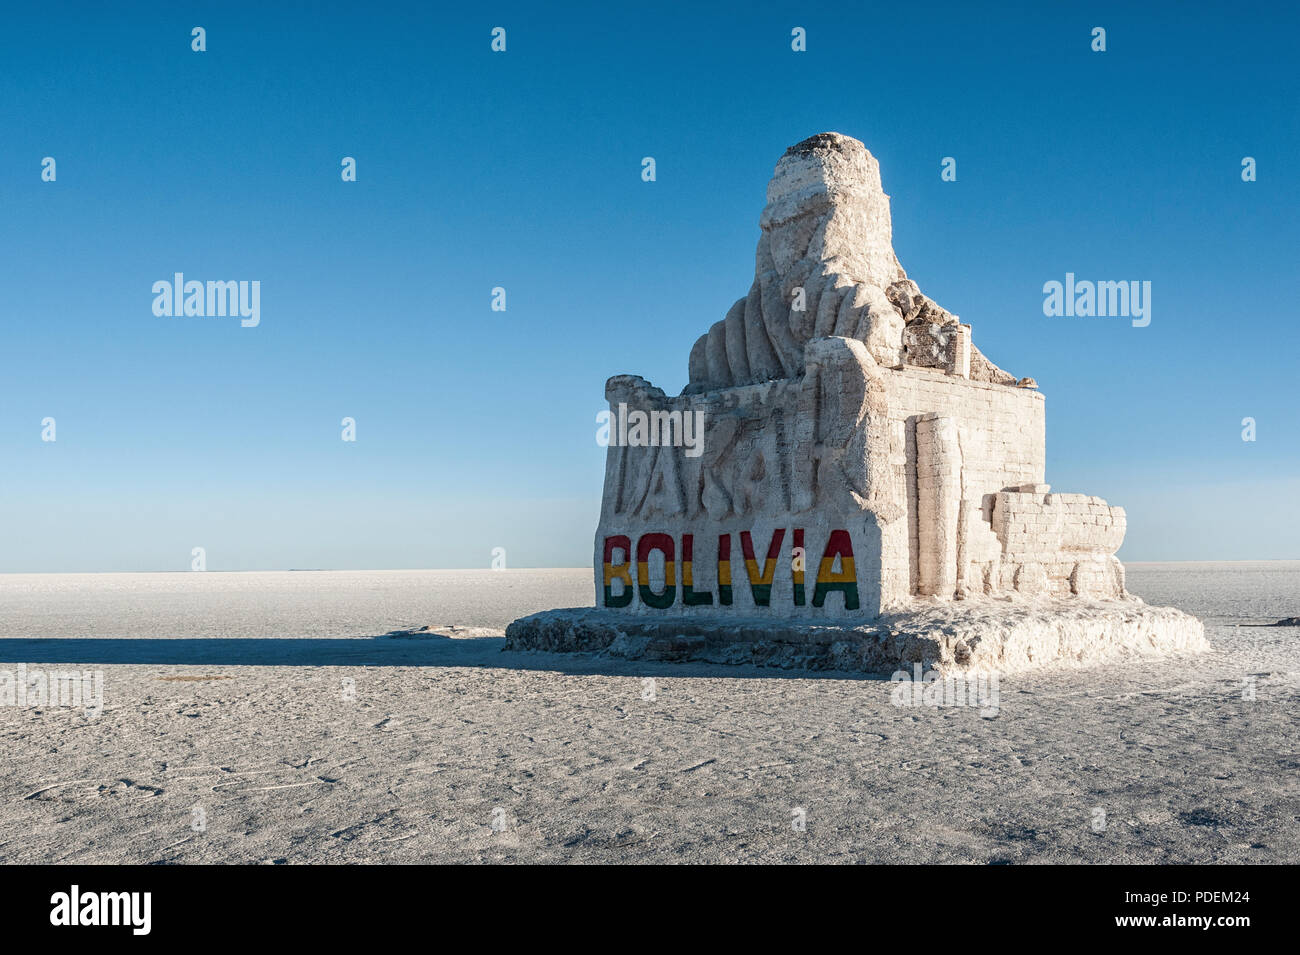 The Dakar Bolivia Monument in Salar de Uyuni, near Colchani - Bolivia - Stock Image